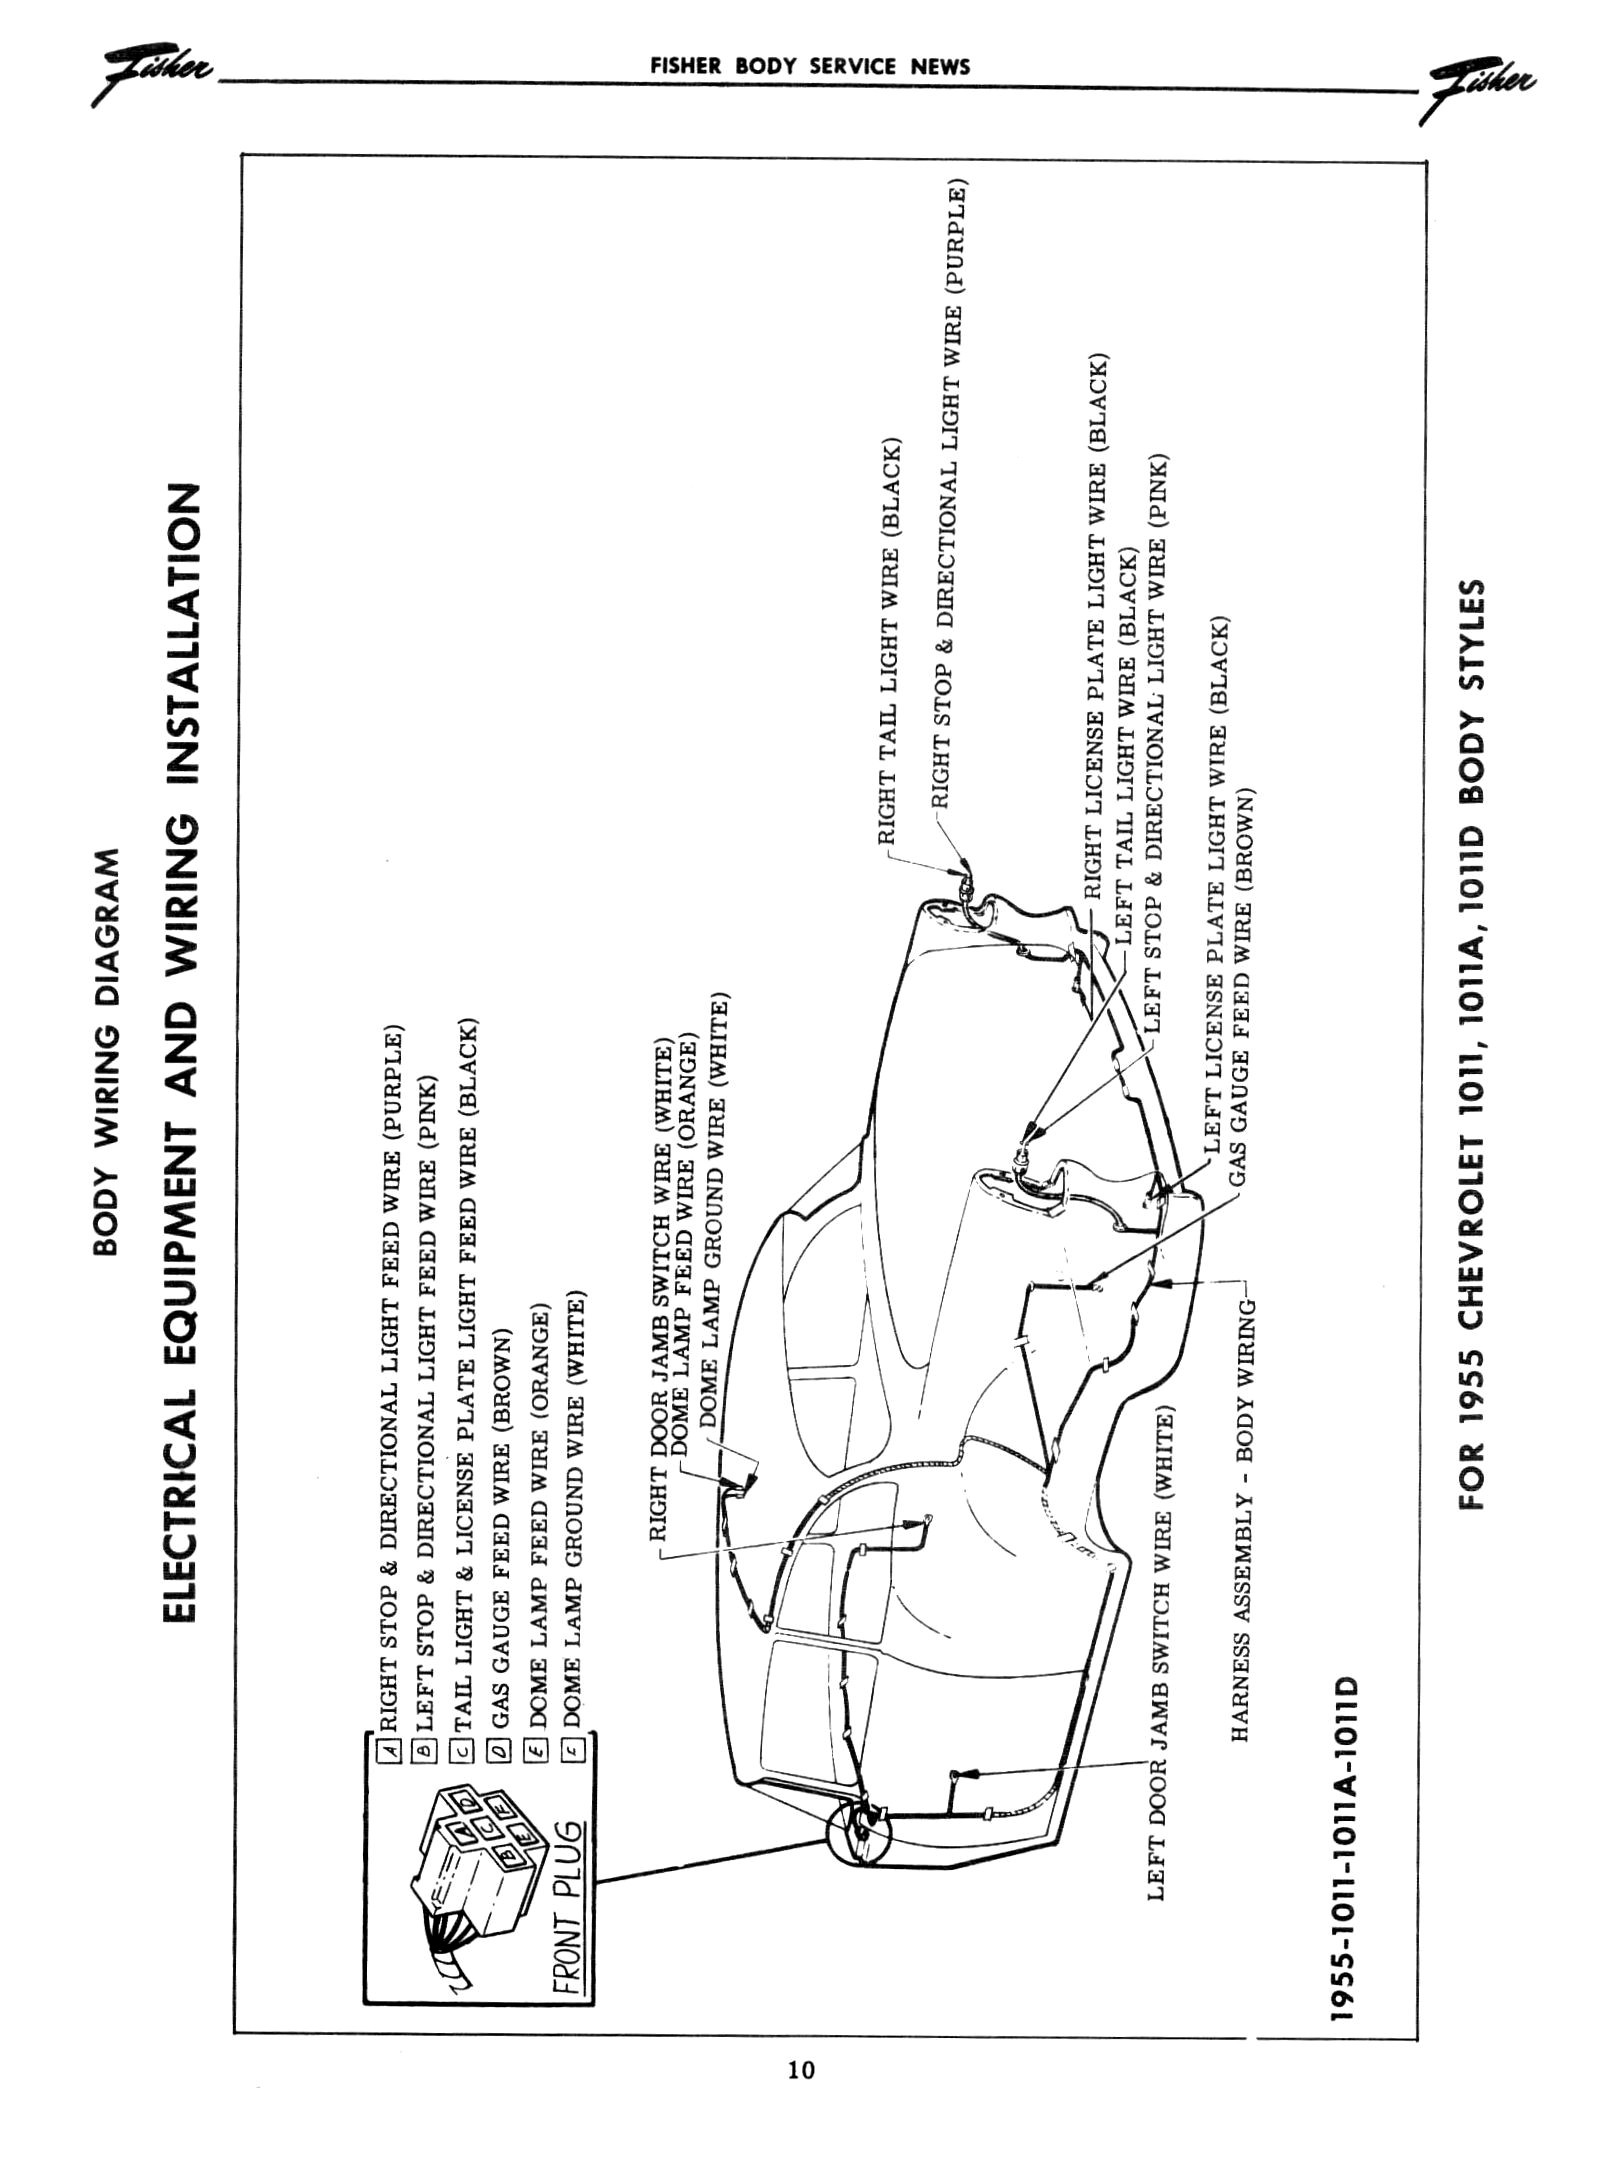 Chevy Truck Tail Light Wiring Diagram In Addition 1955